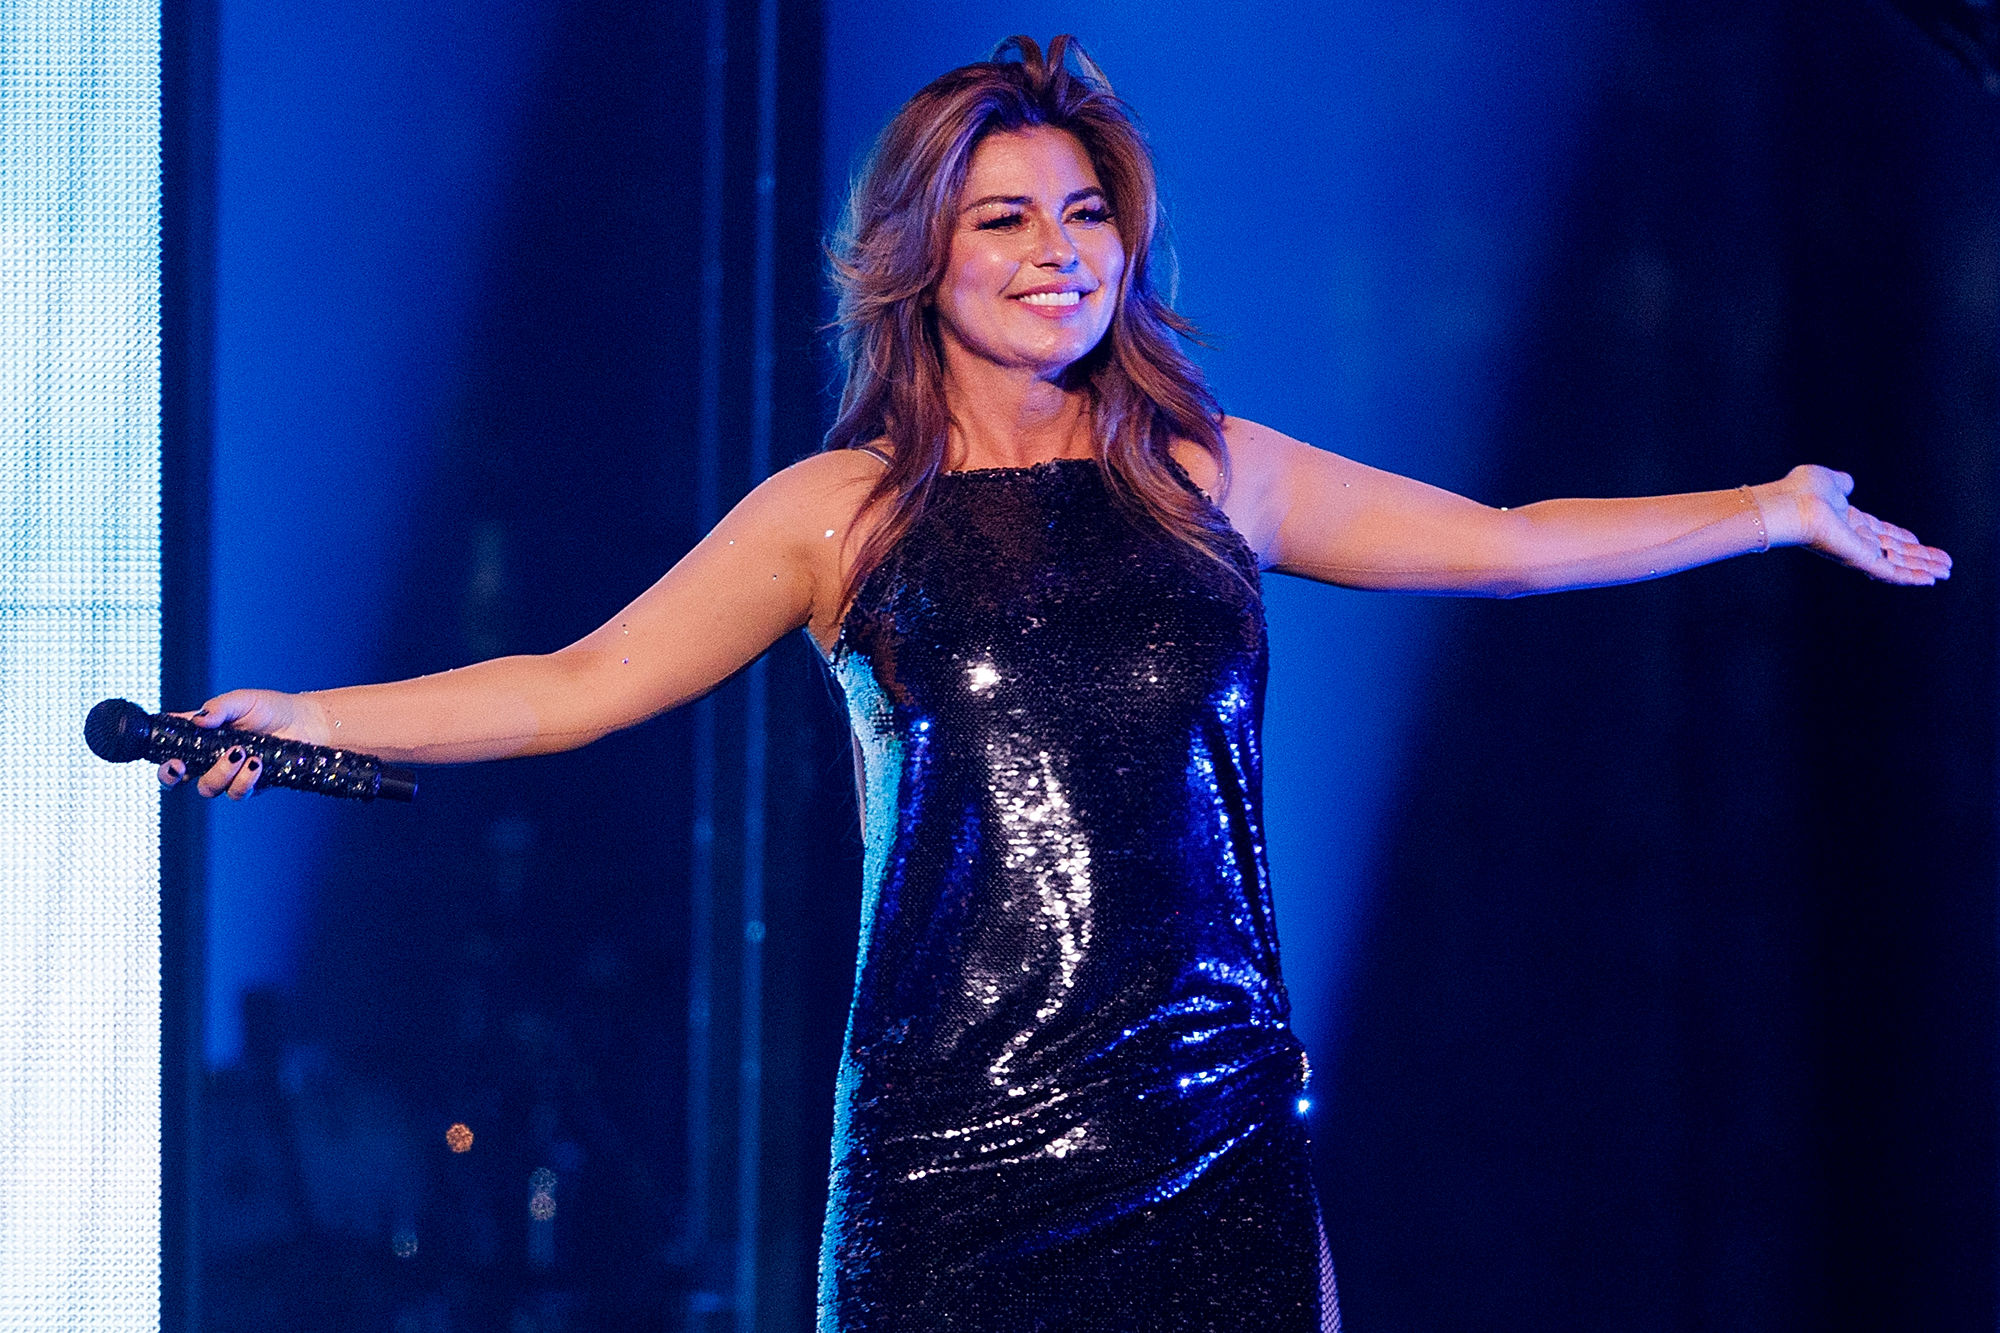 Shania Twain Takes Fans Behind-the-Scenes at the Making of Her Now World Tour